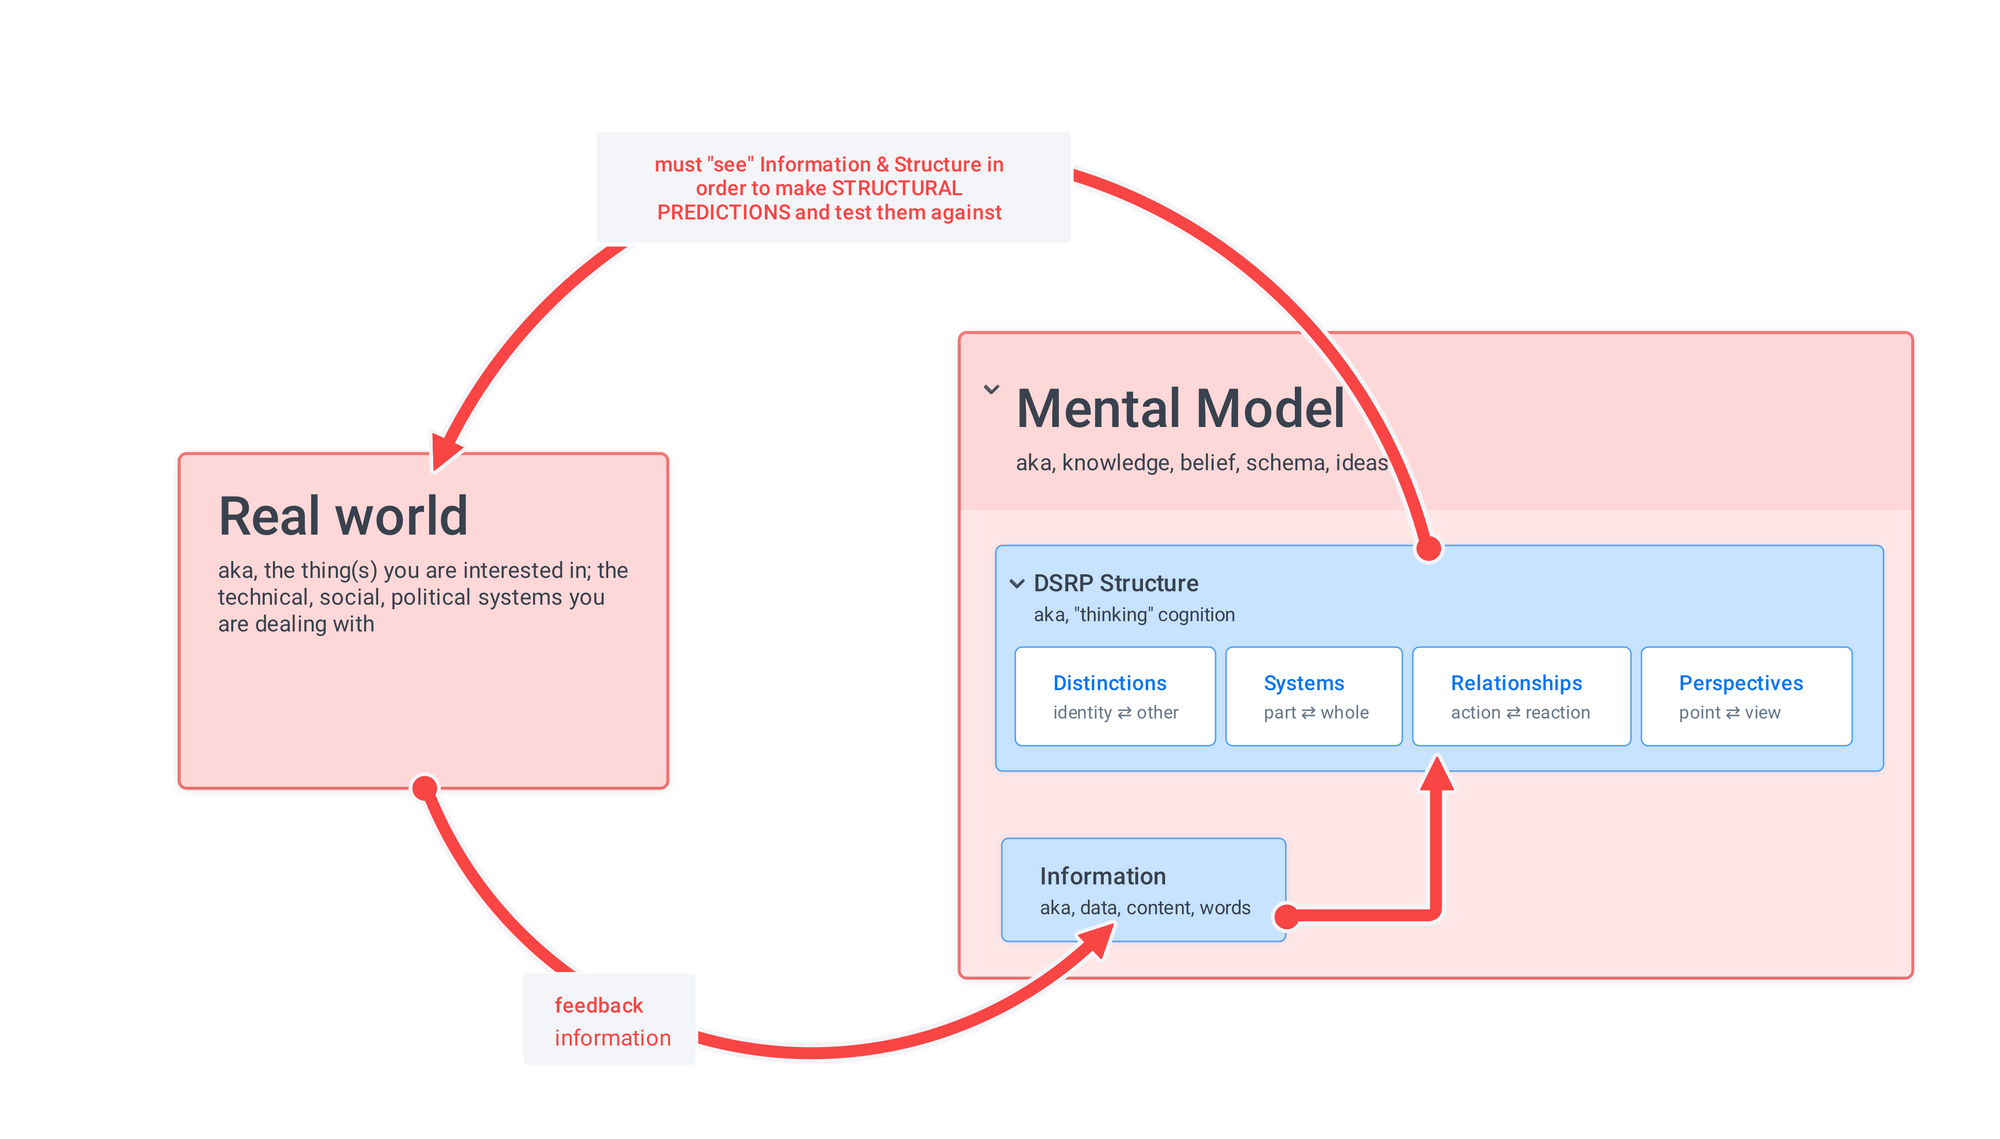 DSRP is how mental models are built